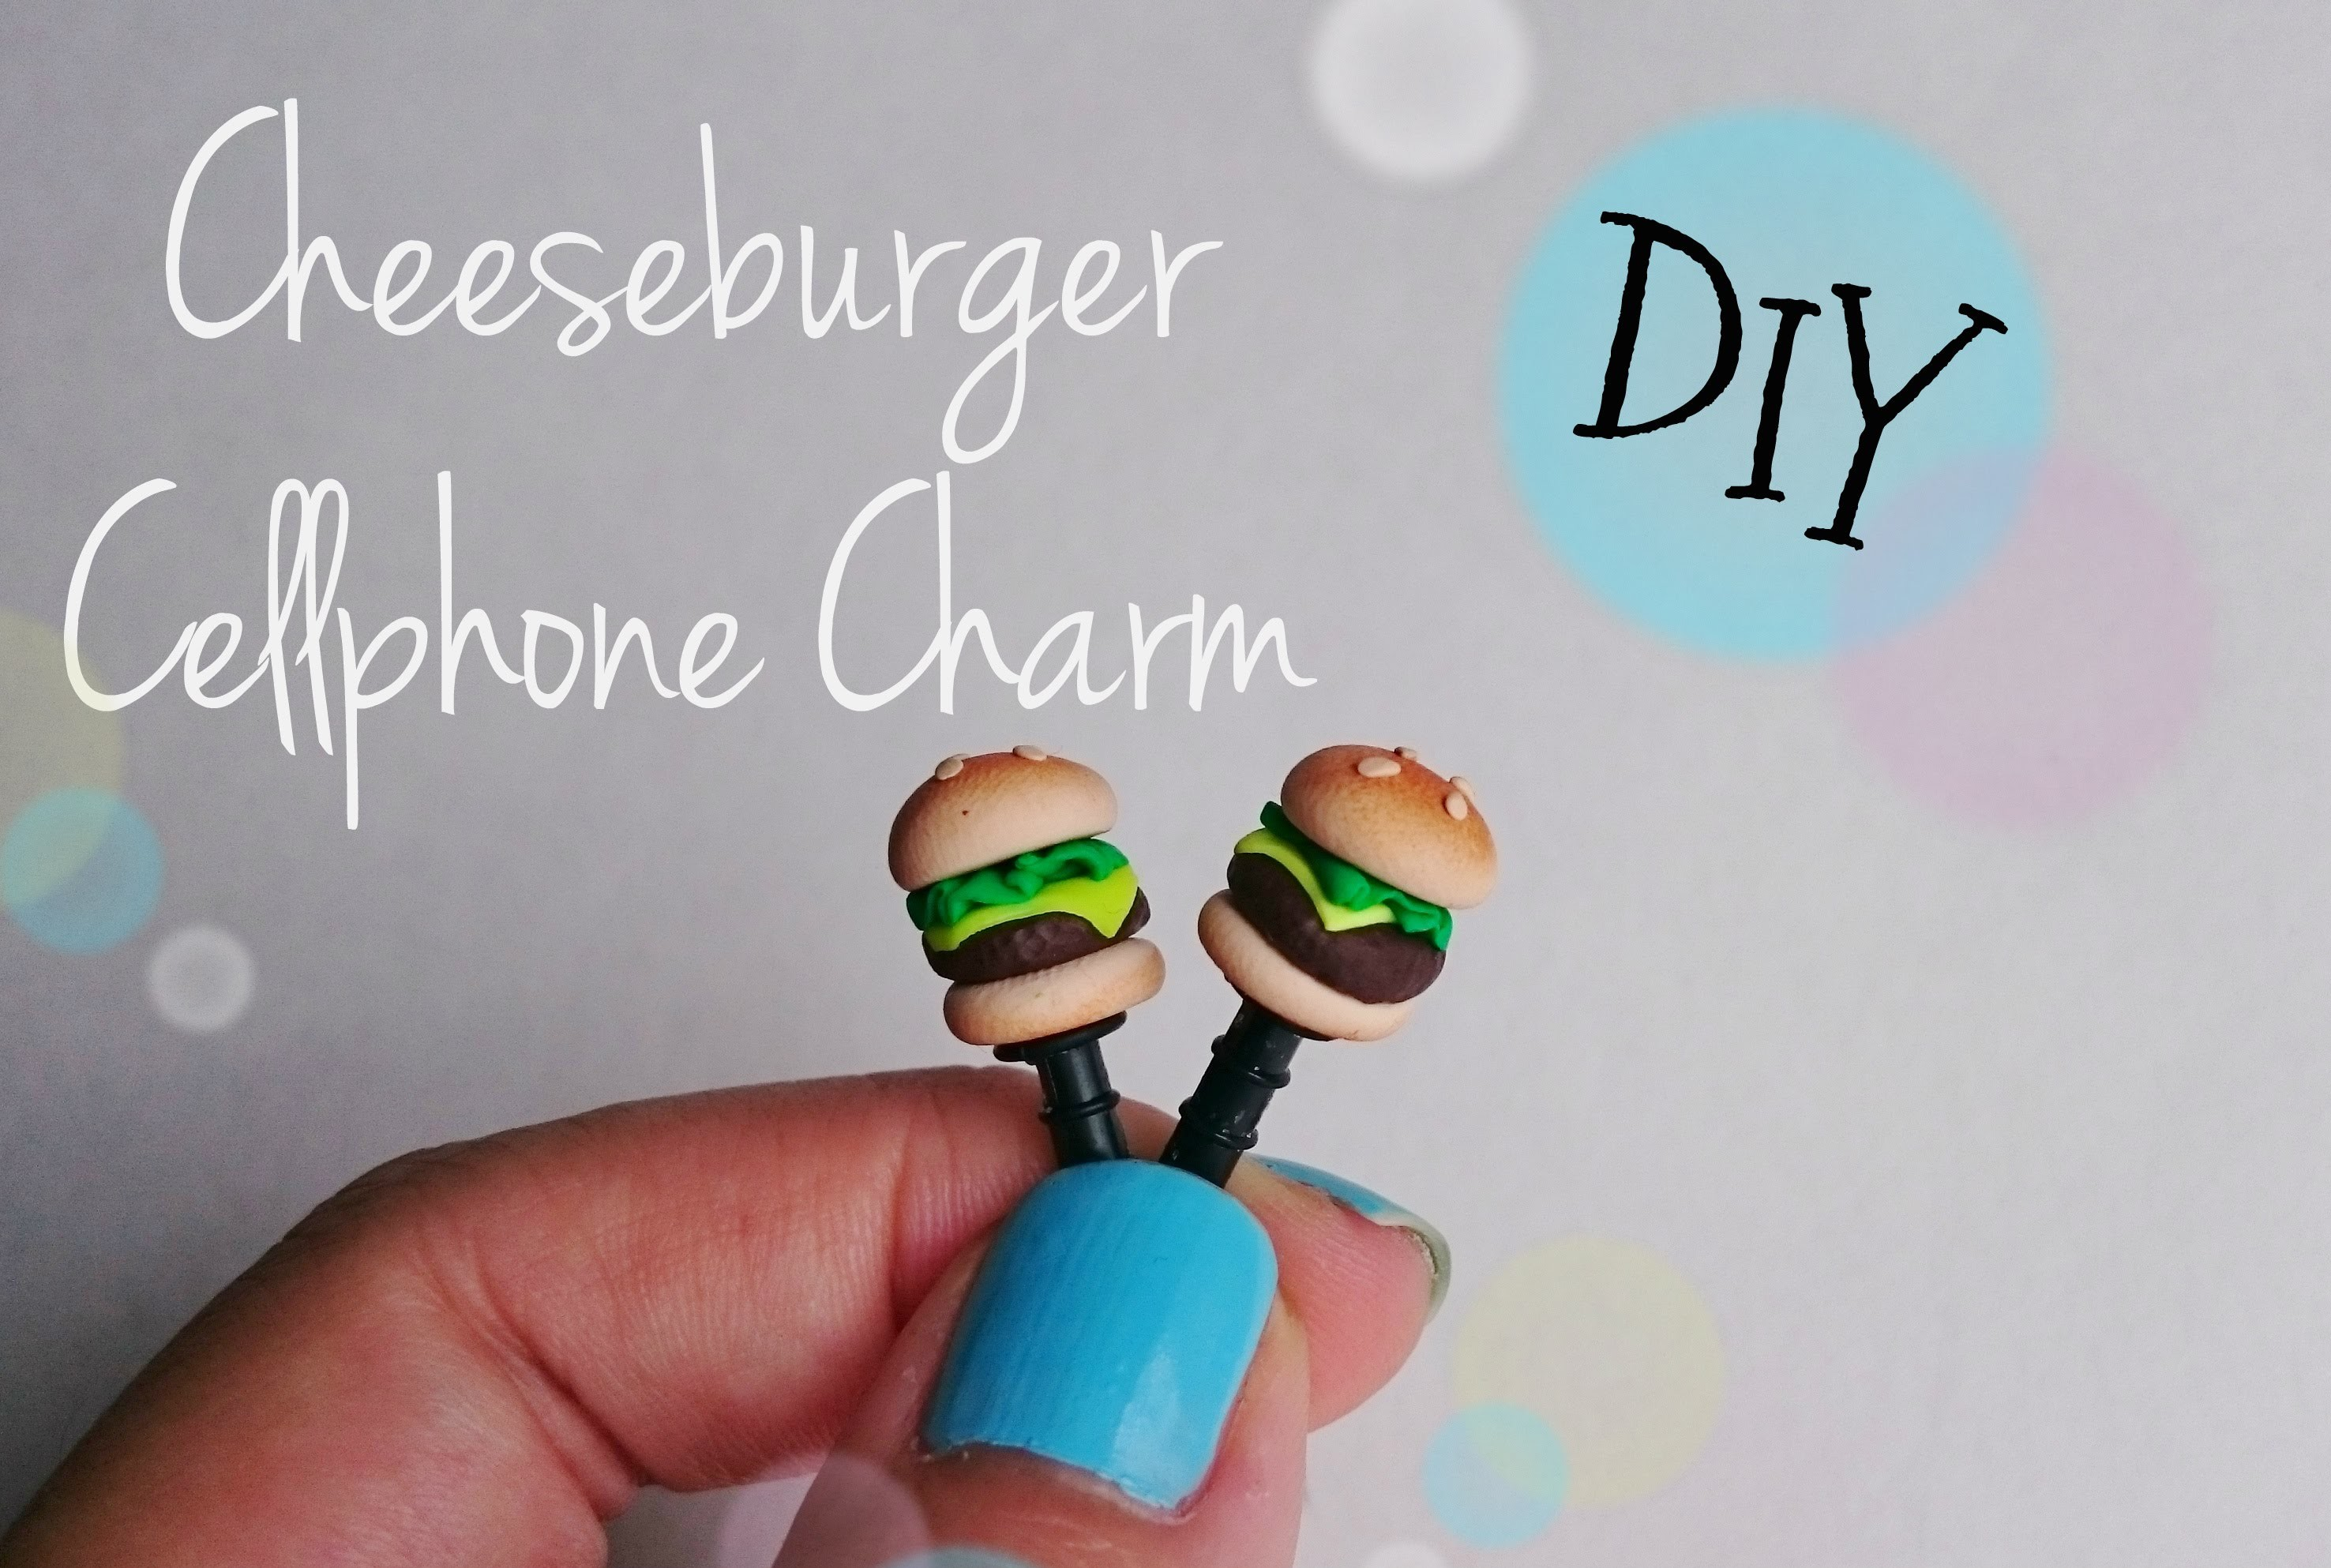 DIY: Cheeseburger Dust Plug Cellphone Charm